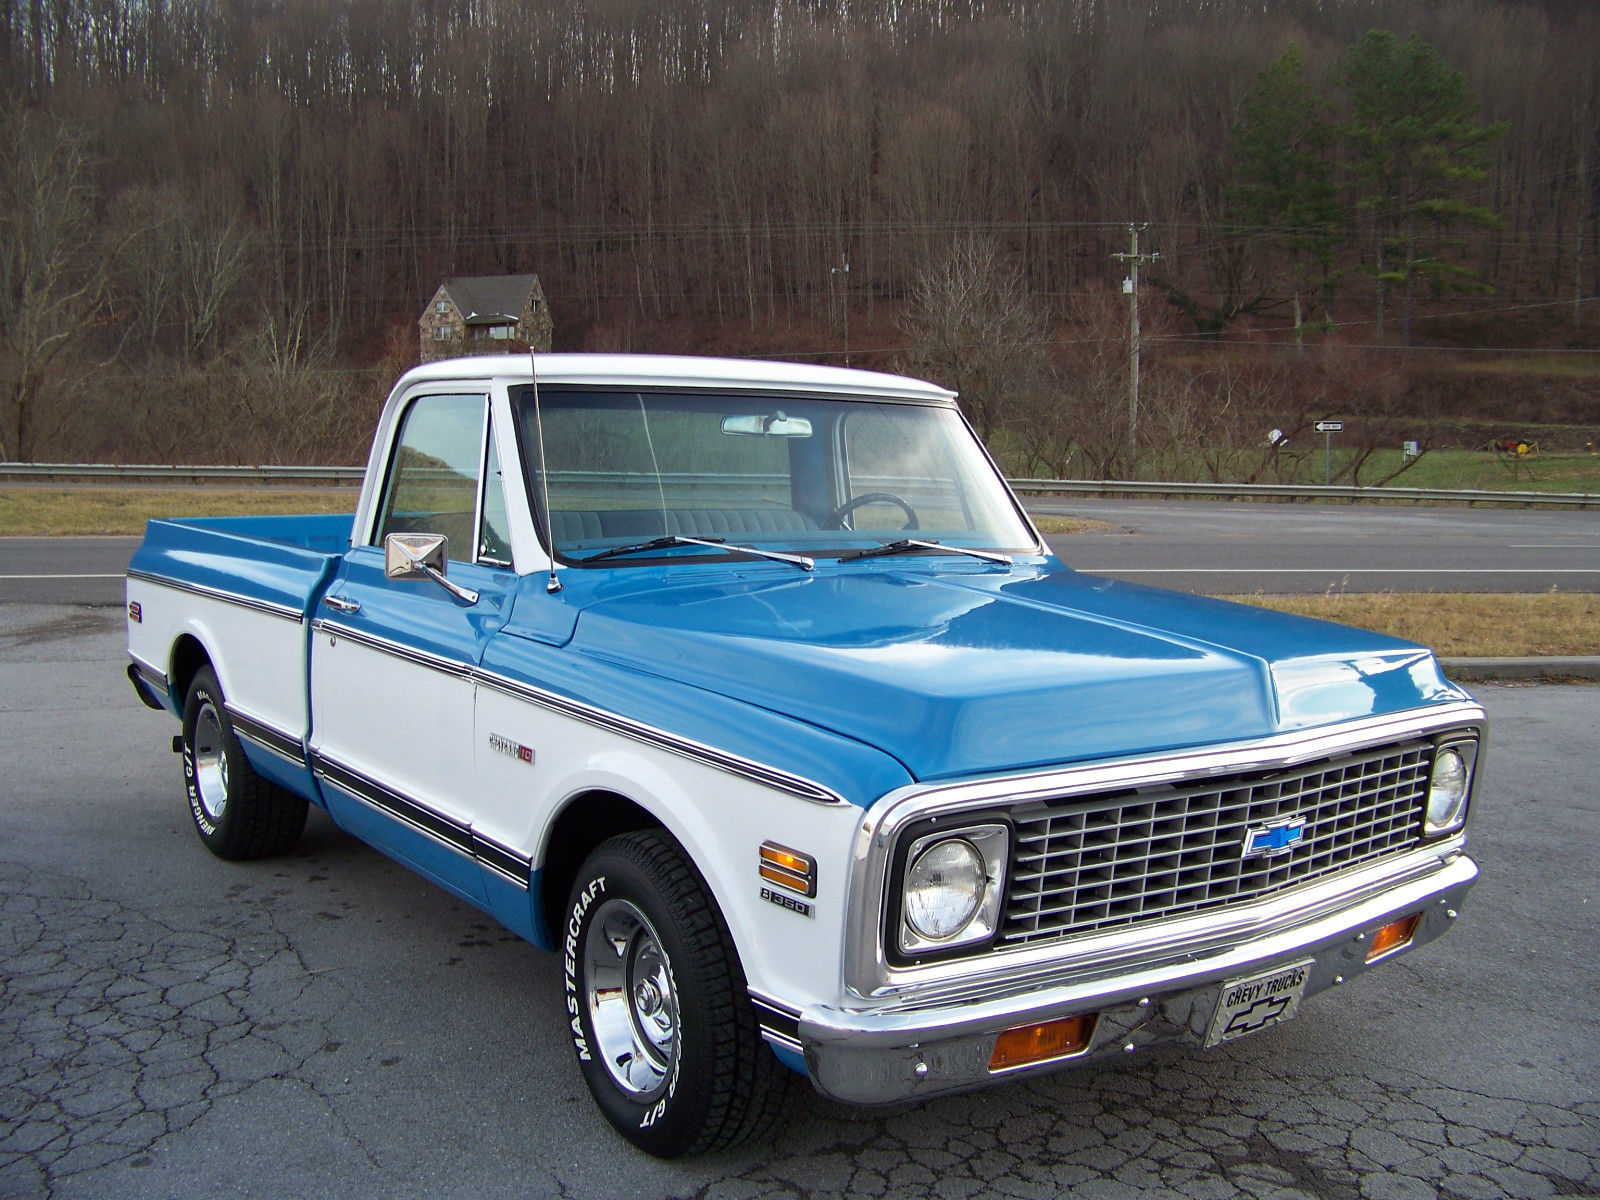 72 chevrolet c10 short bed 350 automatic very nice classic chevrolet c 10 1972 for sale. Black Bedroom Furniture Sets. Home Design Ideas